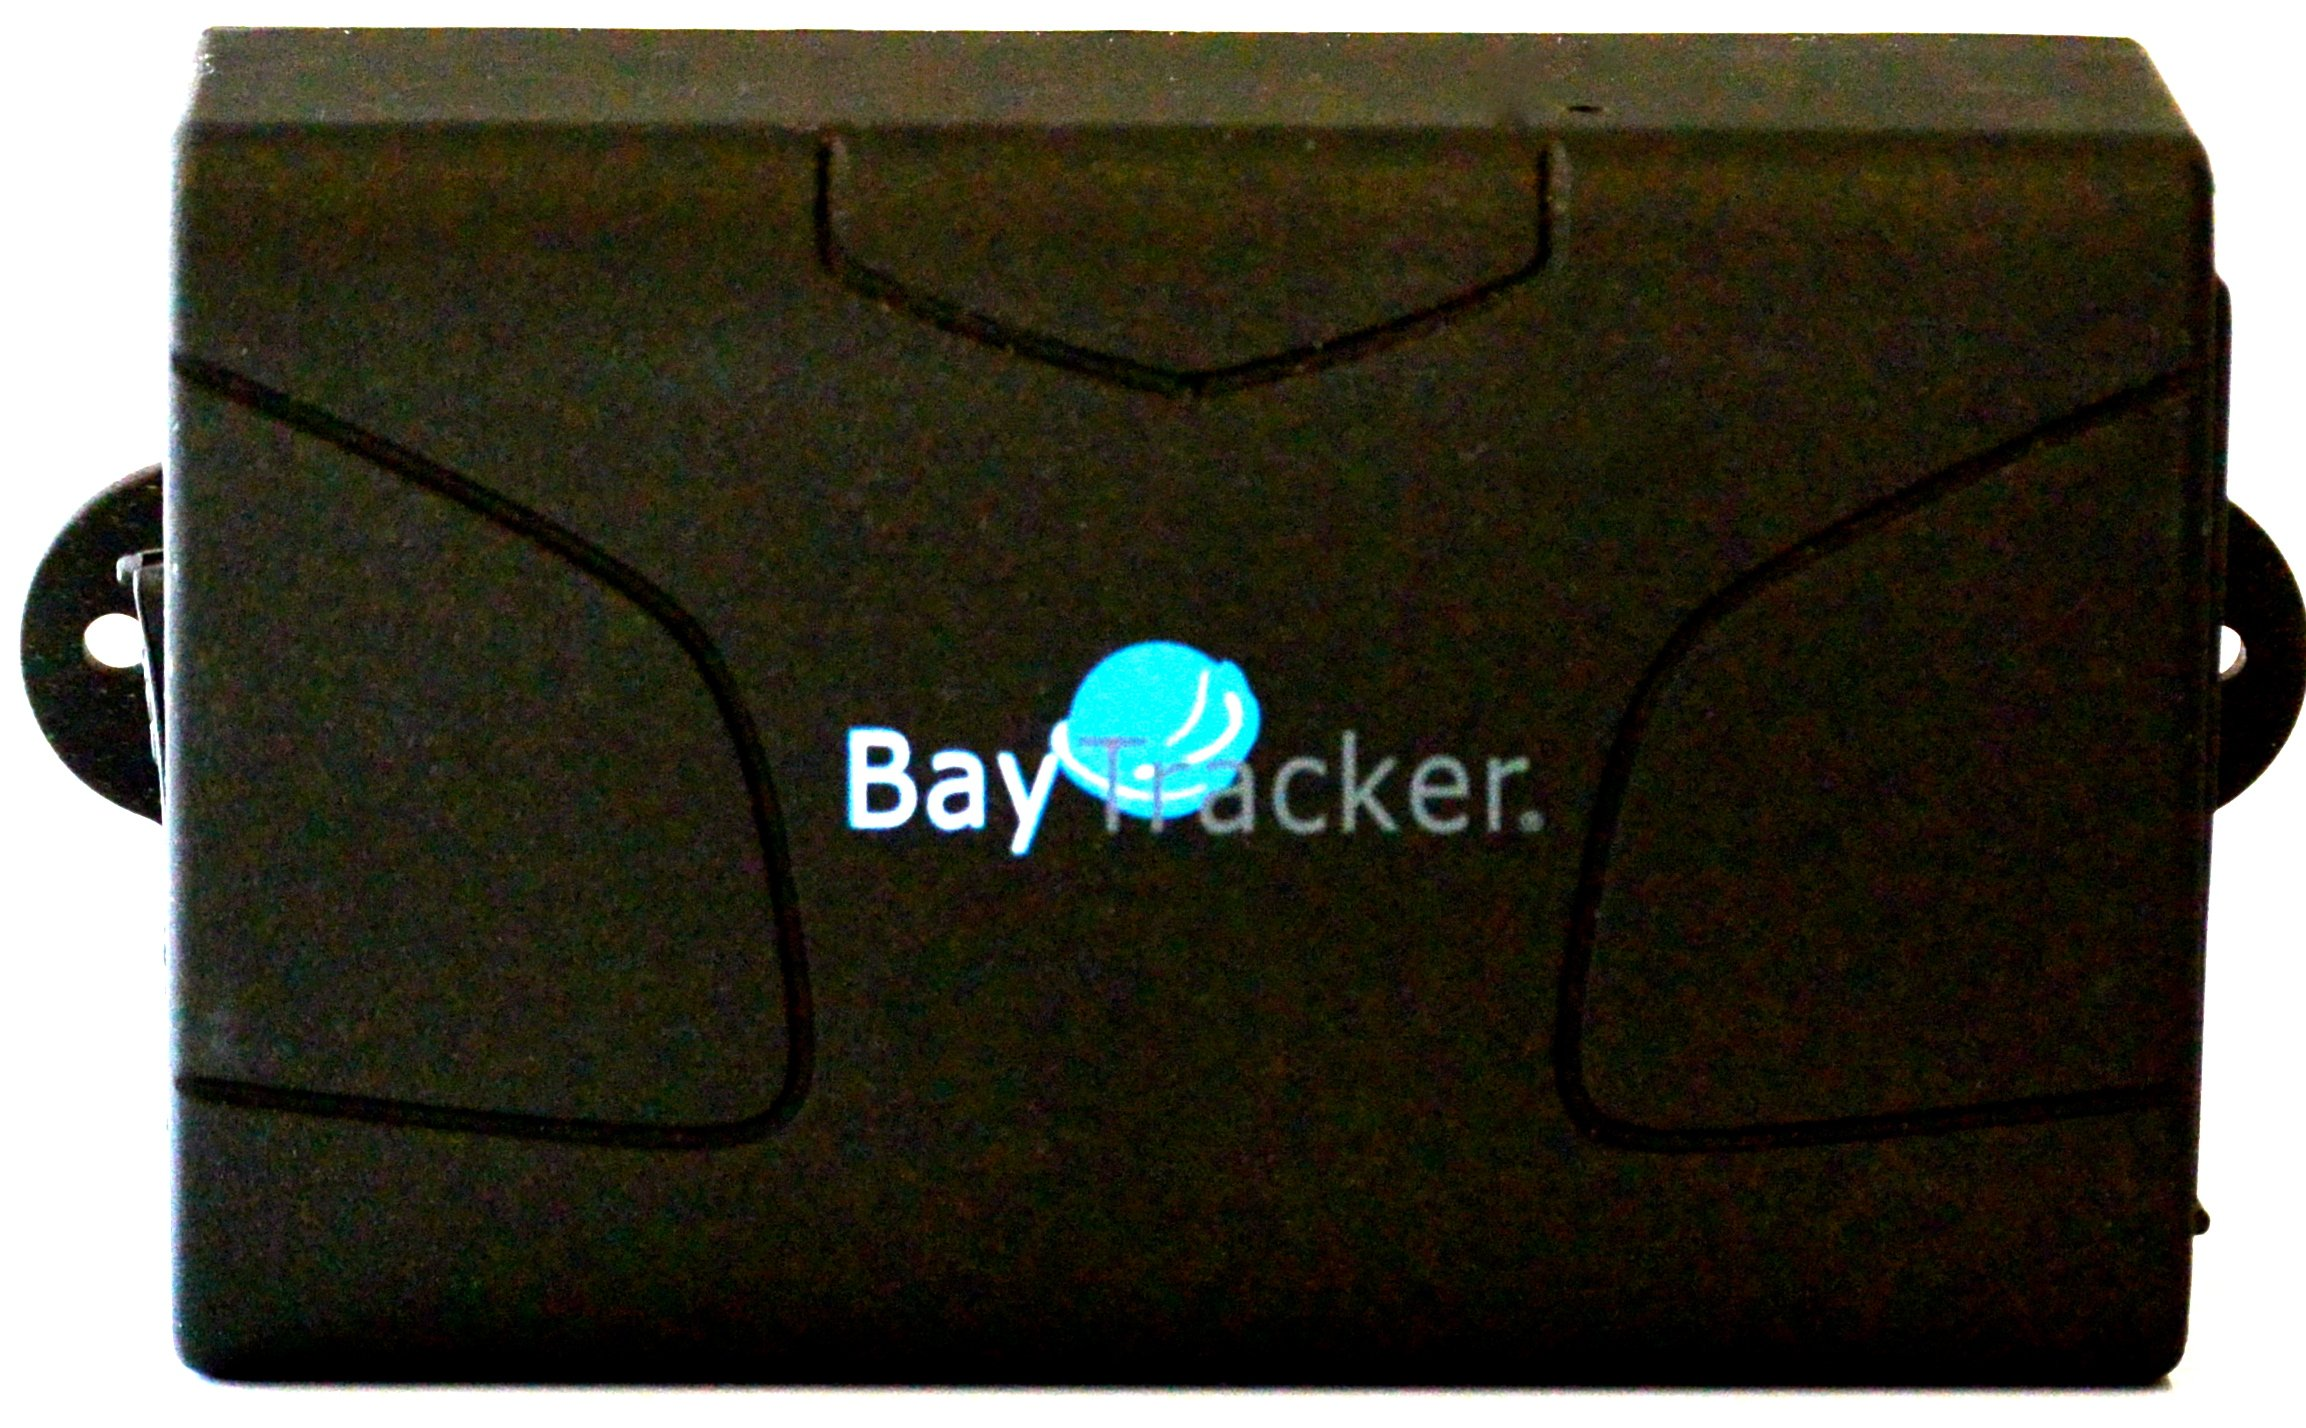 GPS Tracking Device- BayTracker BT-2000 RealTime Spy Tracking Device for Vehicles Mini Portable GPS/GSM Tracker-Micro Tracker GPS Tracker GSM Locater Tracking device for people, pets, cars, equipment...etc. Fleet Tracking-NO MONTHLY FEES! SIM BASED - FREE